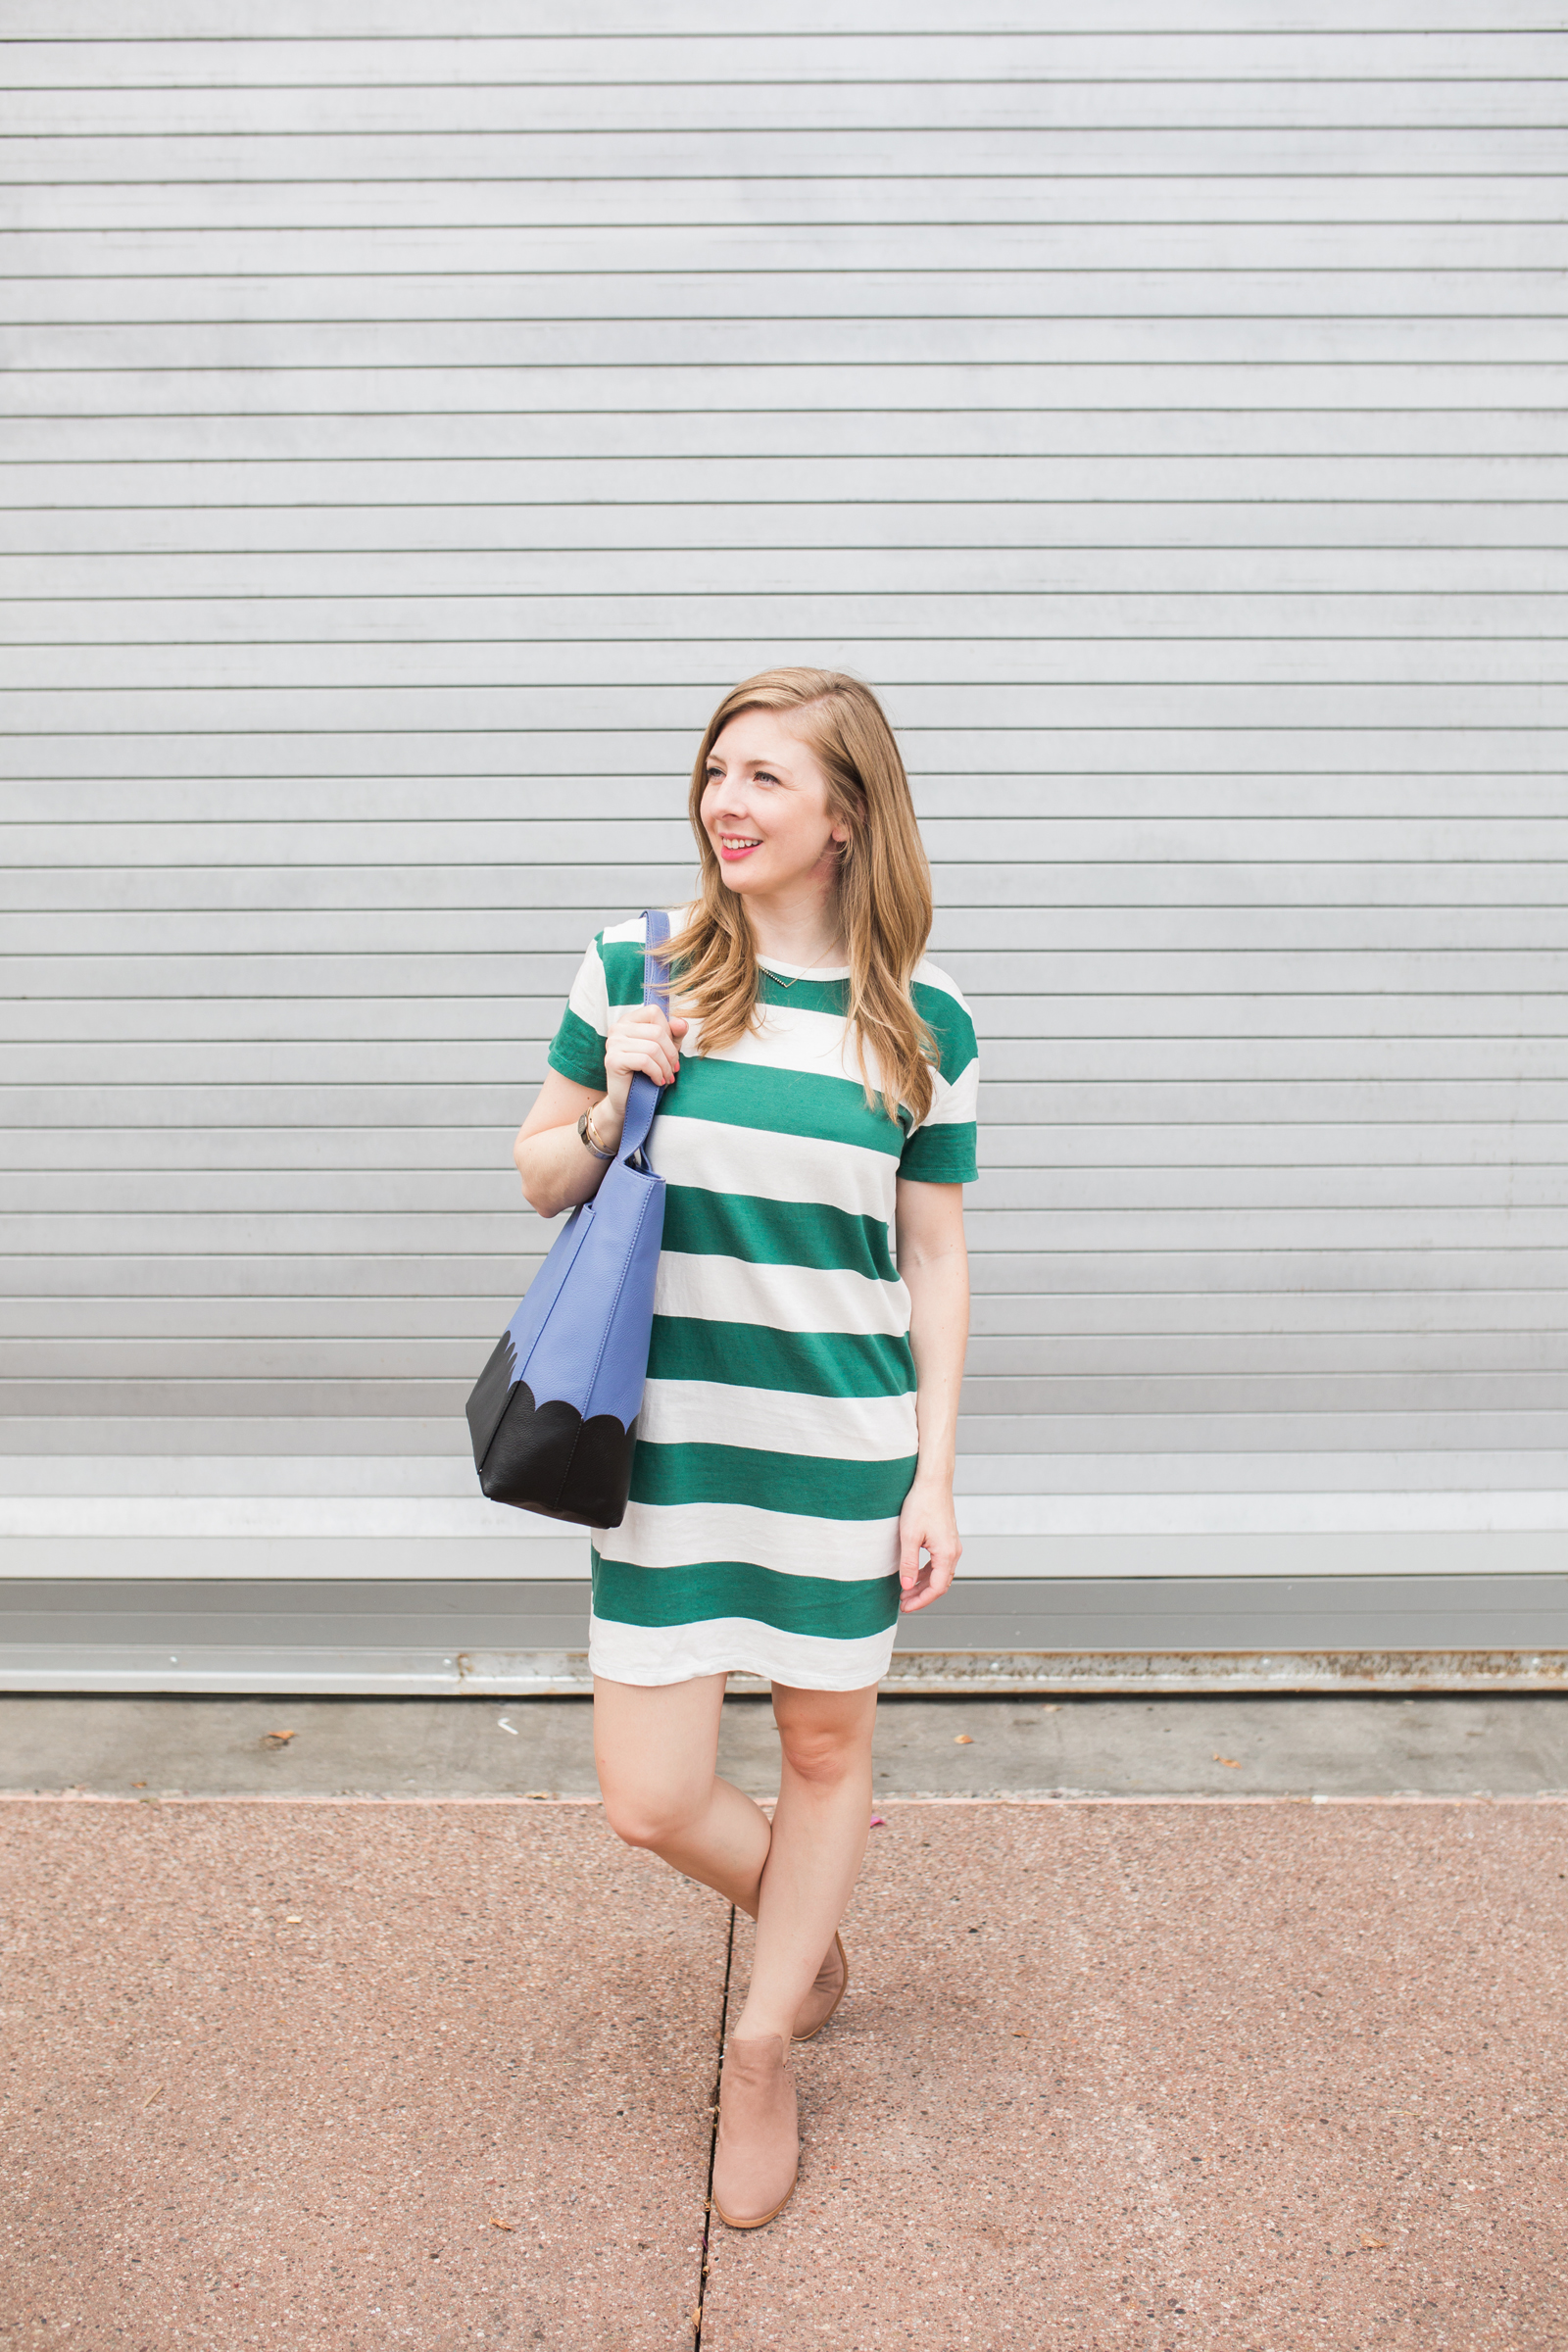 Green and White Rugby Dress